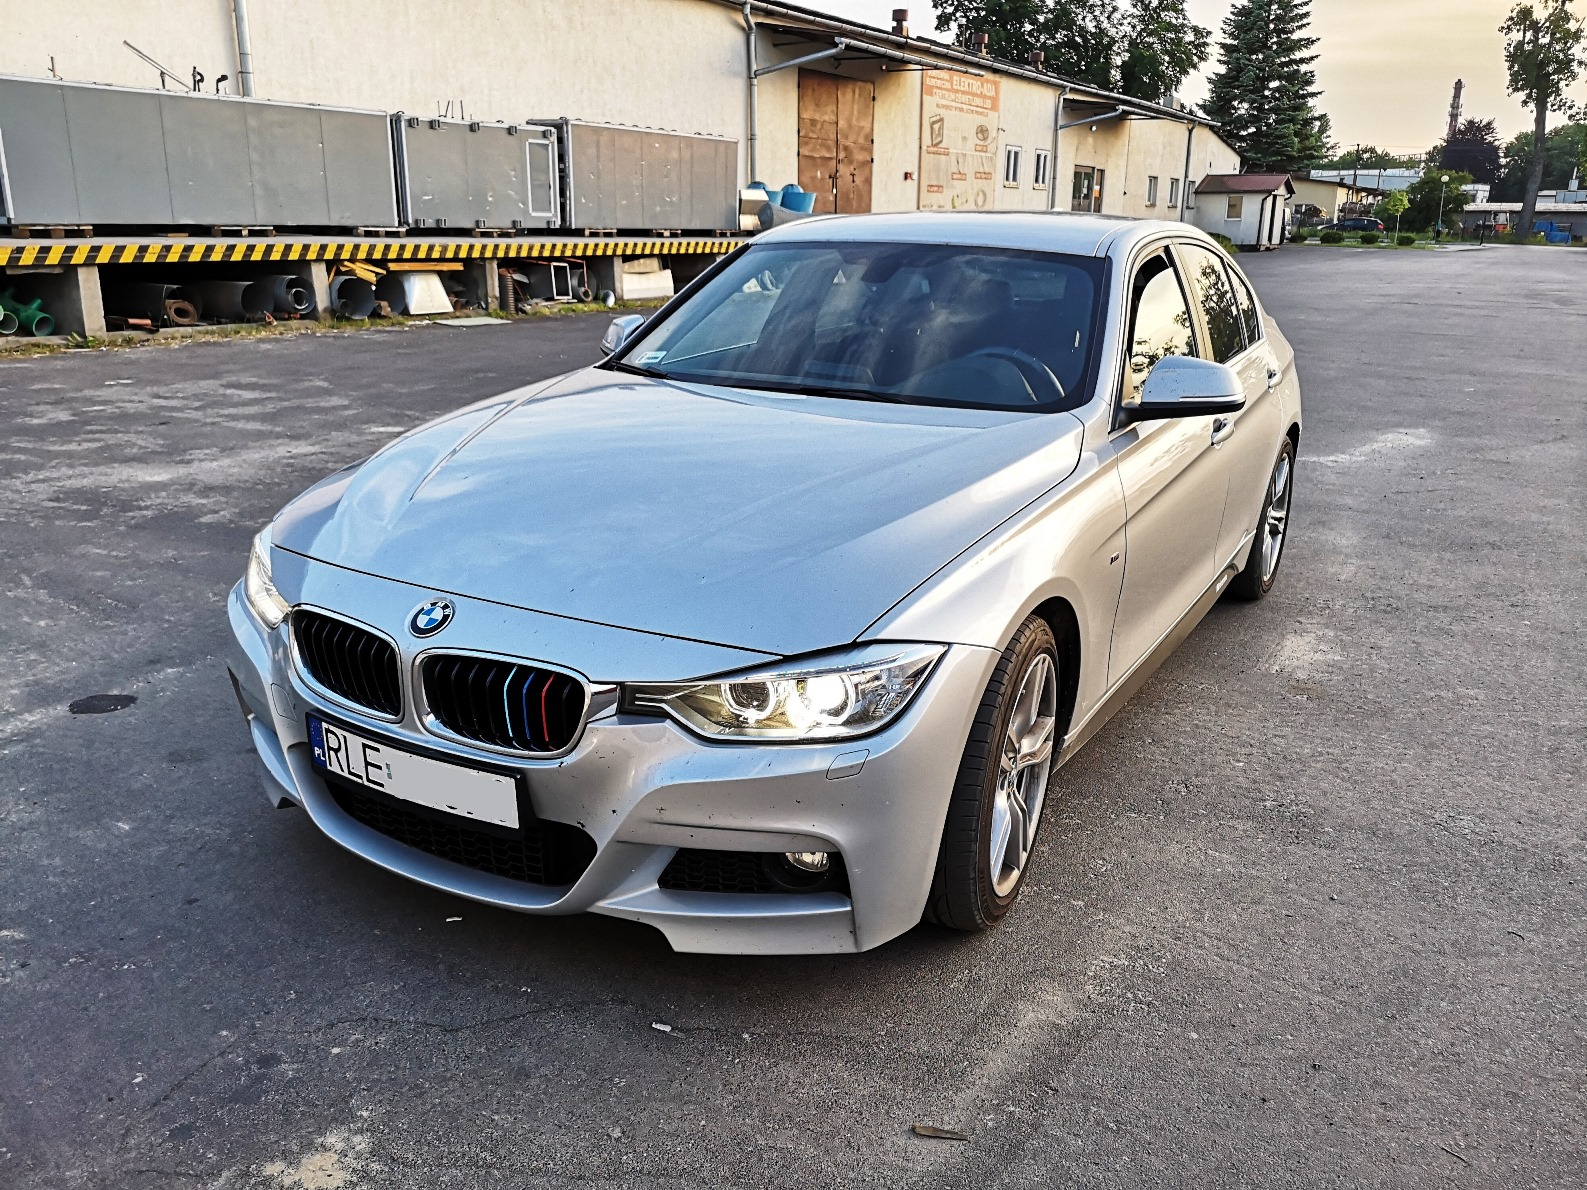 BMW F30 316d 116KM >> 188KM 403Nm